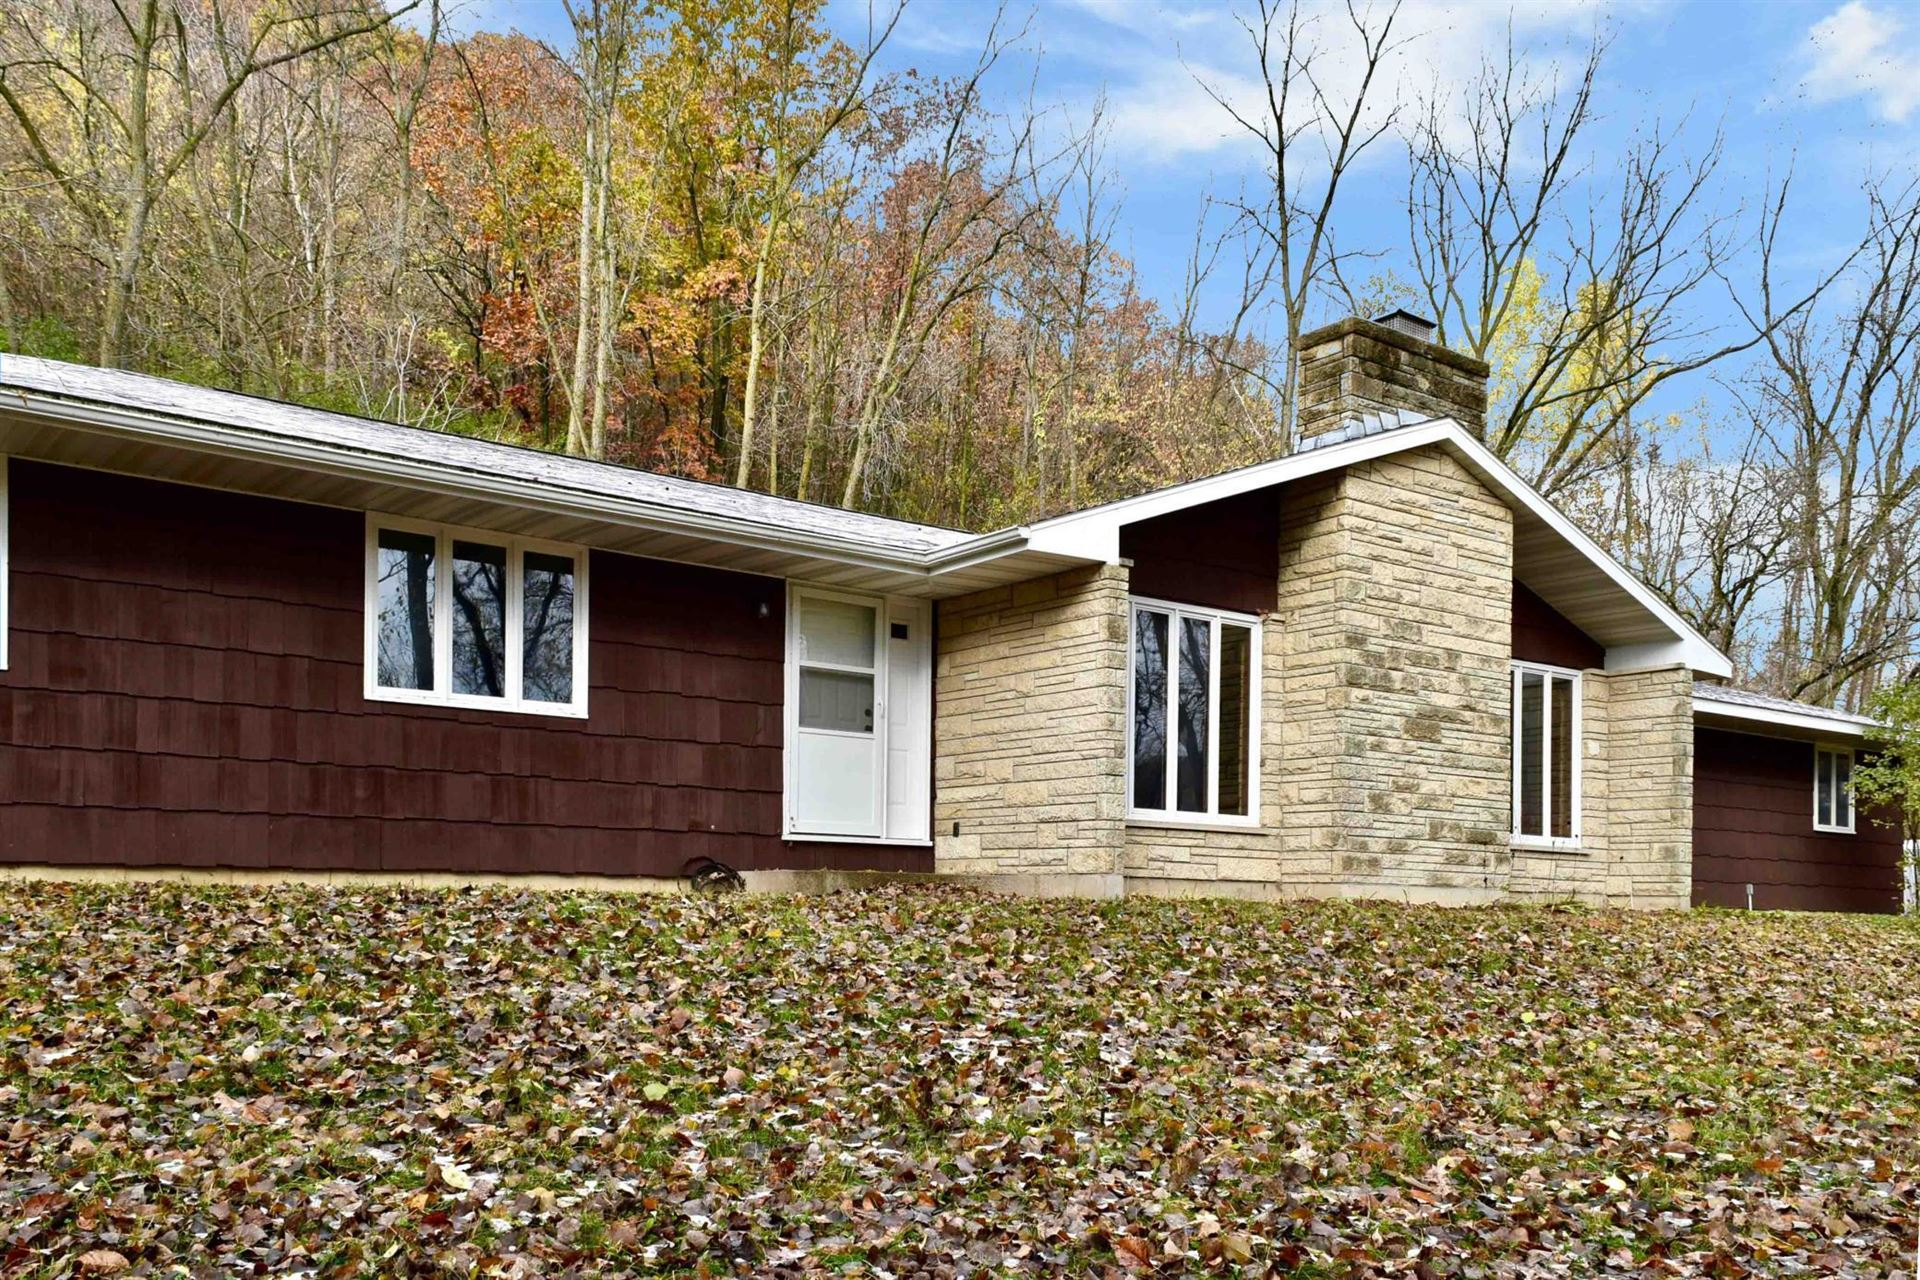 24421 County Road 17, Winona, MN 55987 - MLS#: 5676753